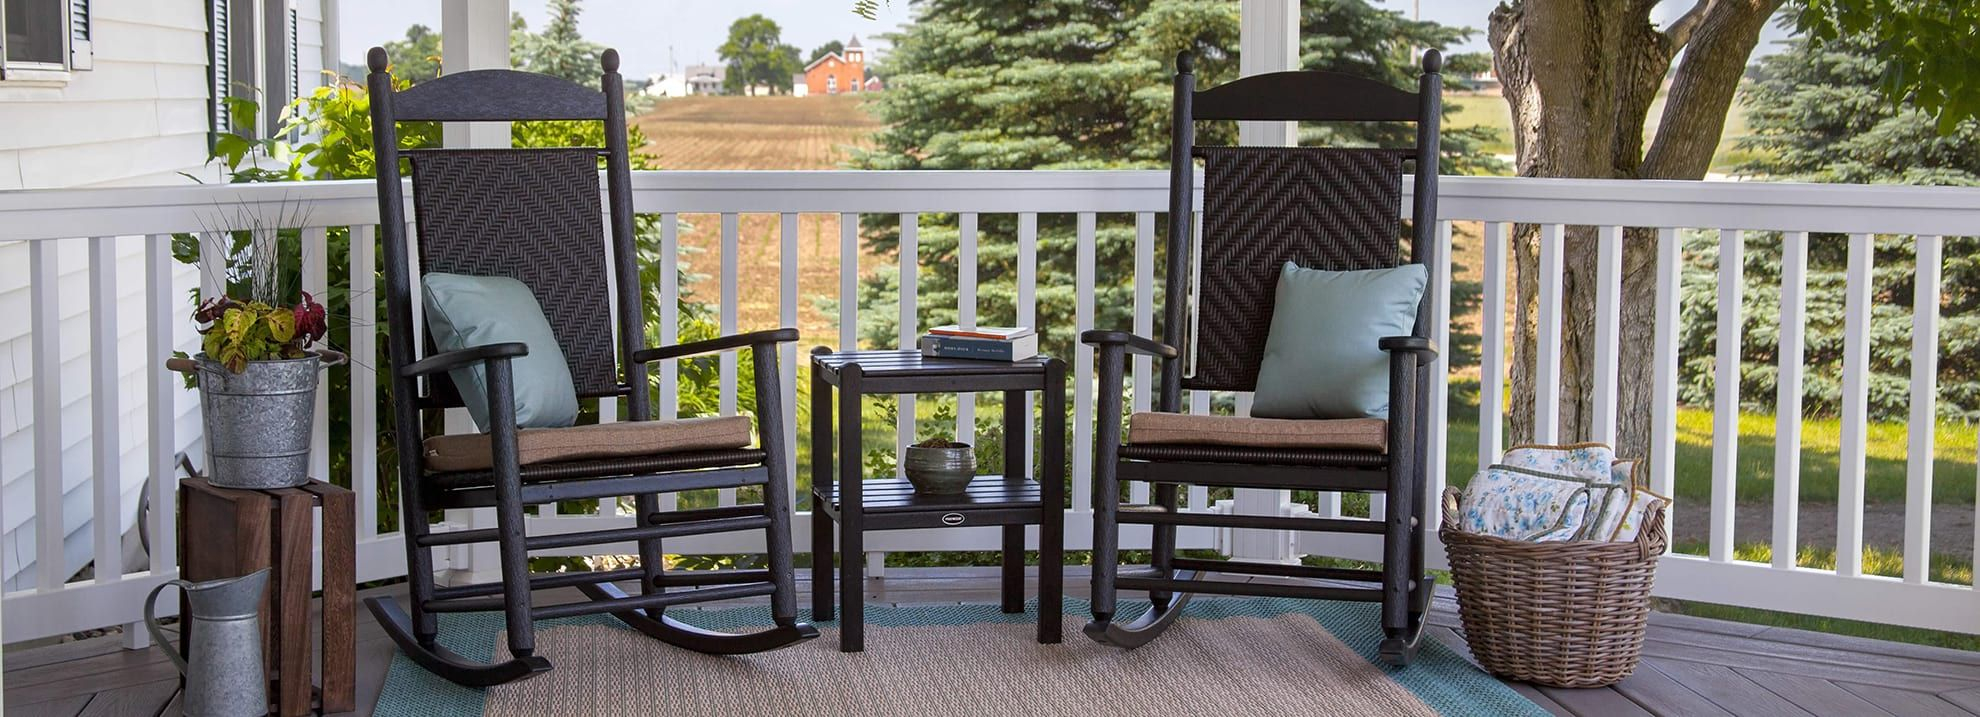 Outdoor Front Porch Furniture | Porch Table, Chairs, Porch in Front Porch Patio Furniture